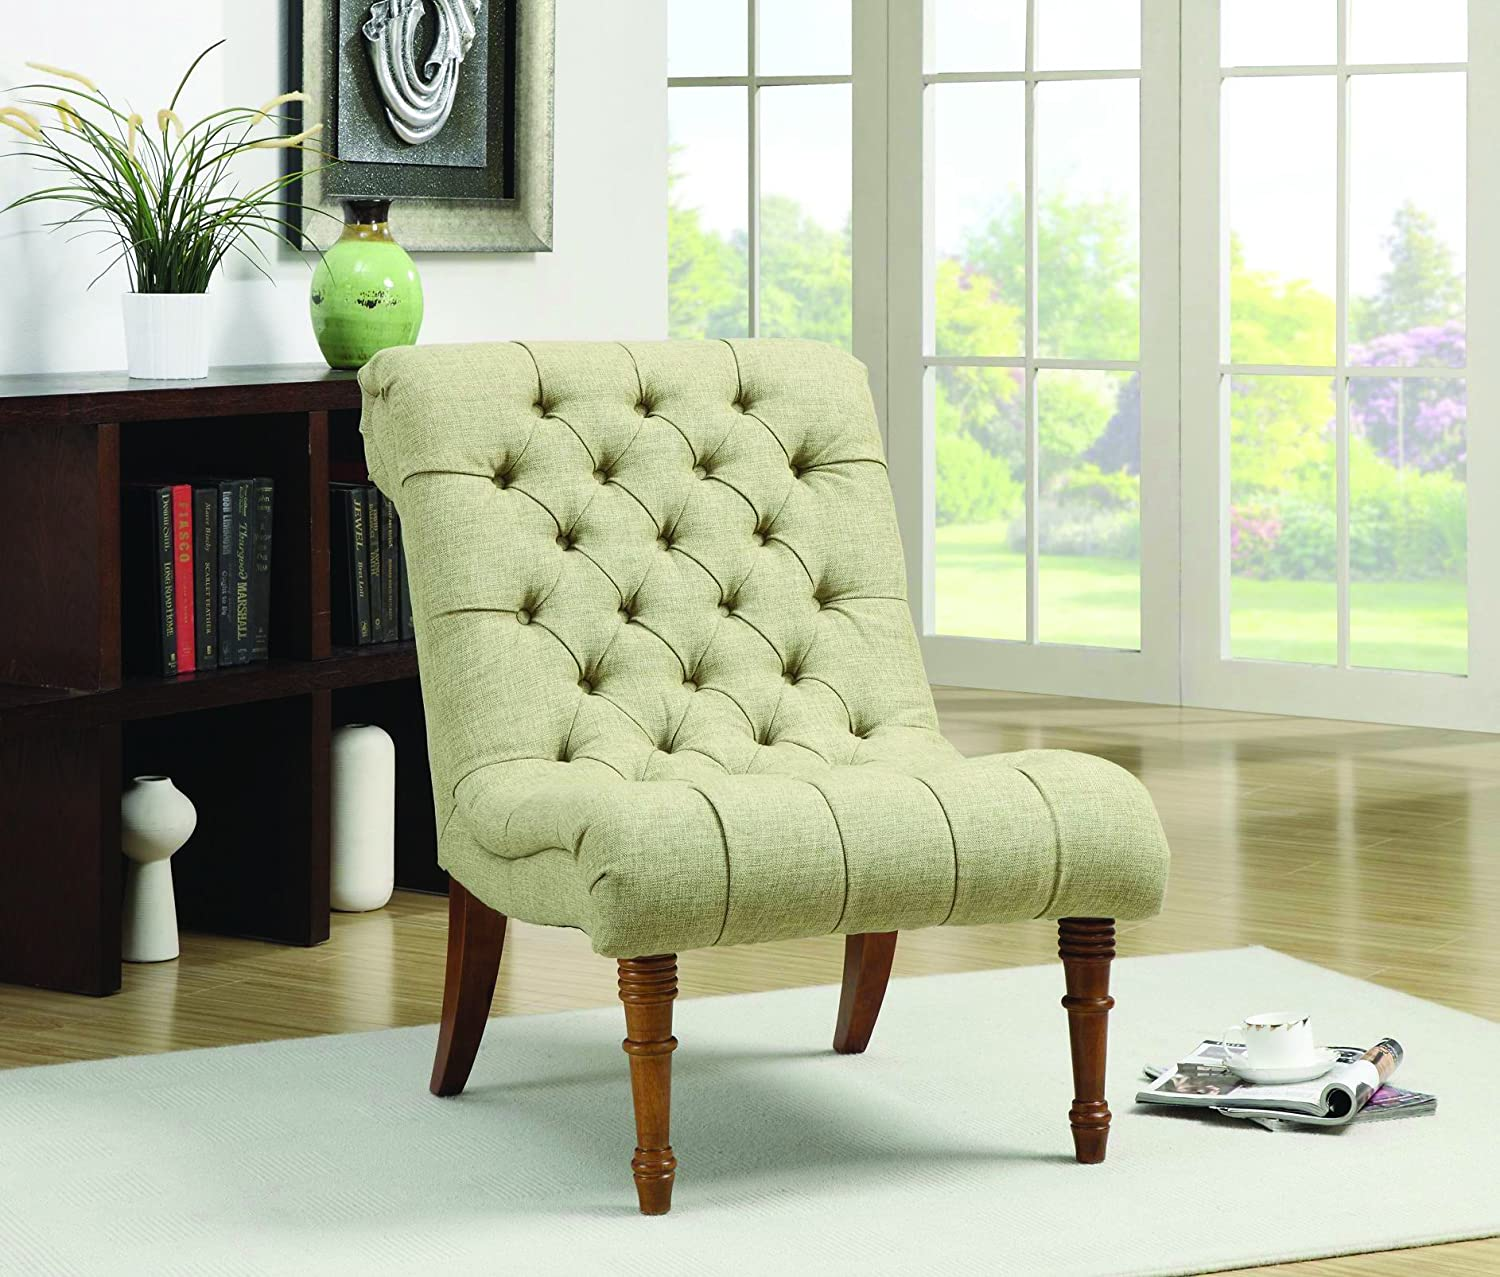 Amazoncom Tufted Accent Chair Without Arms Mossy Green Kitchen